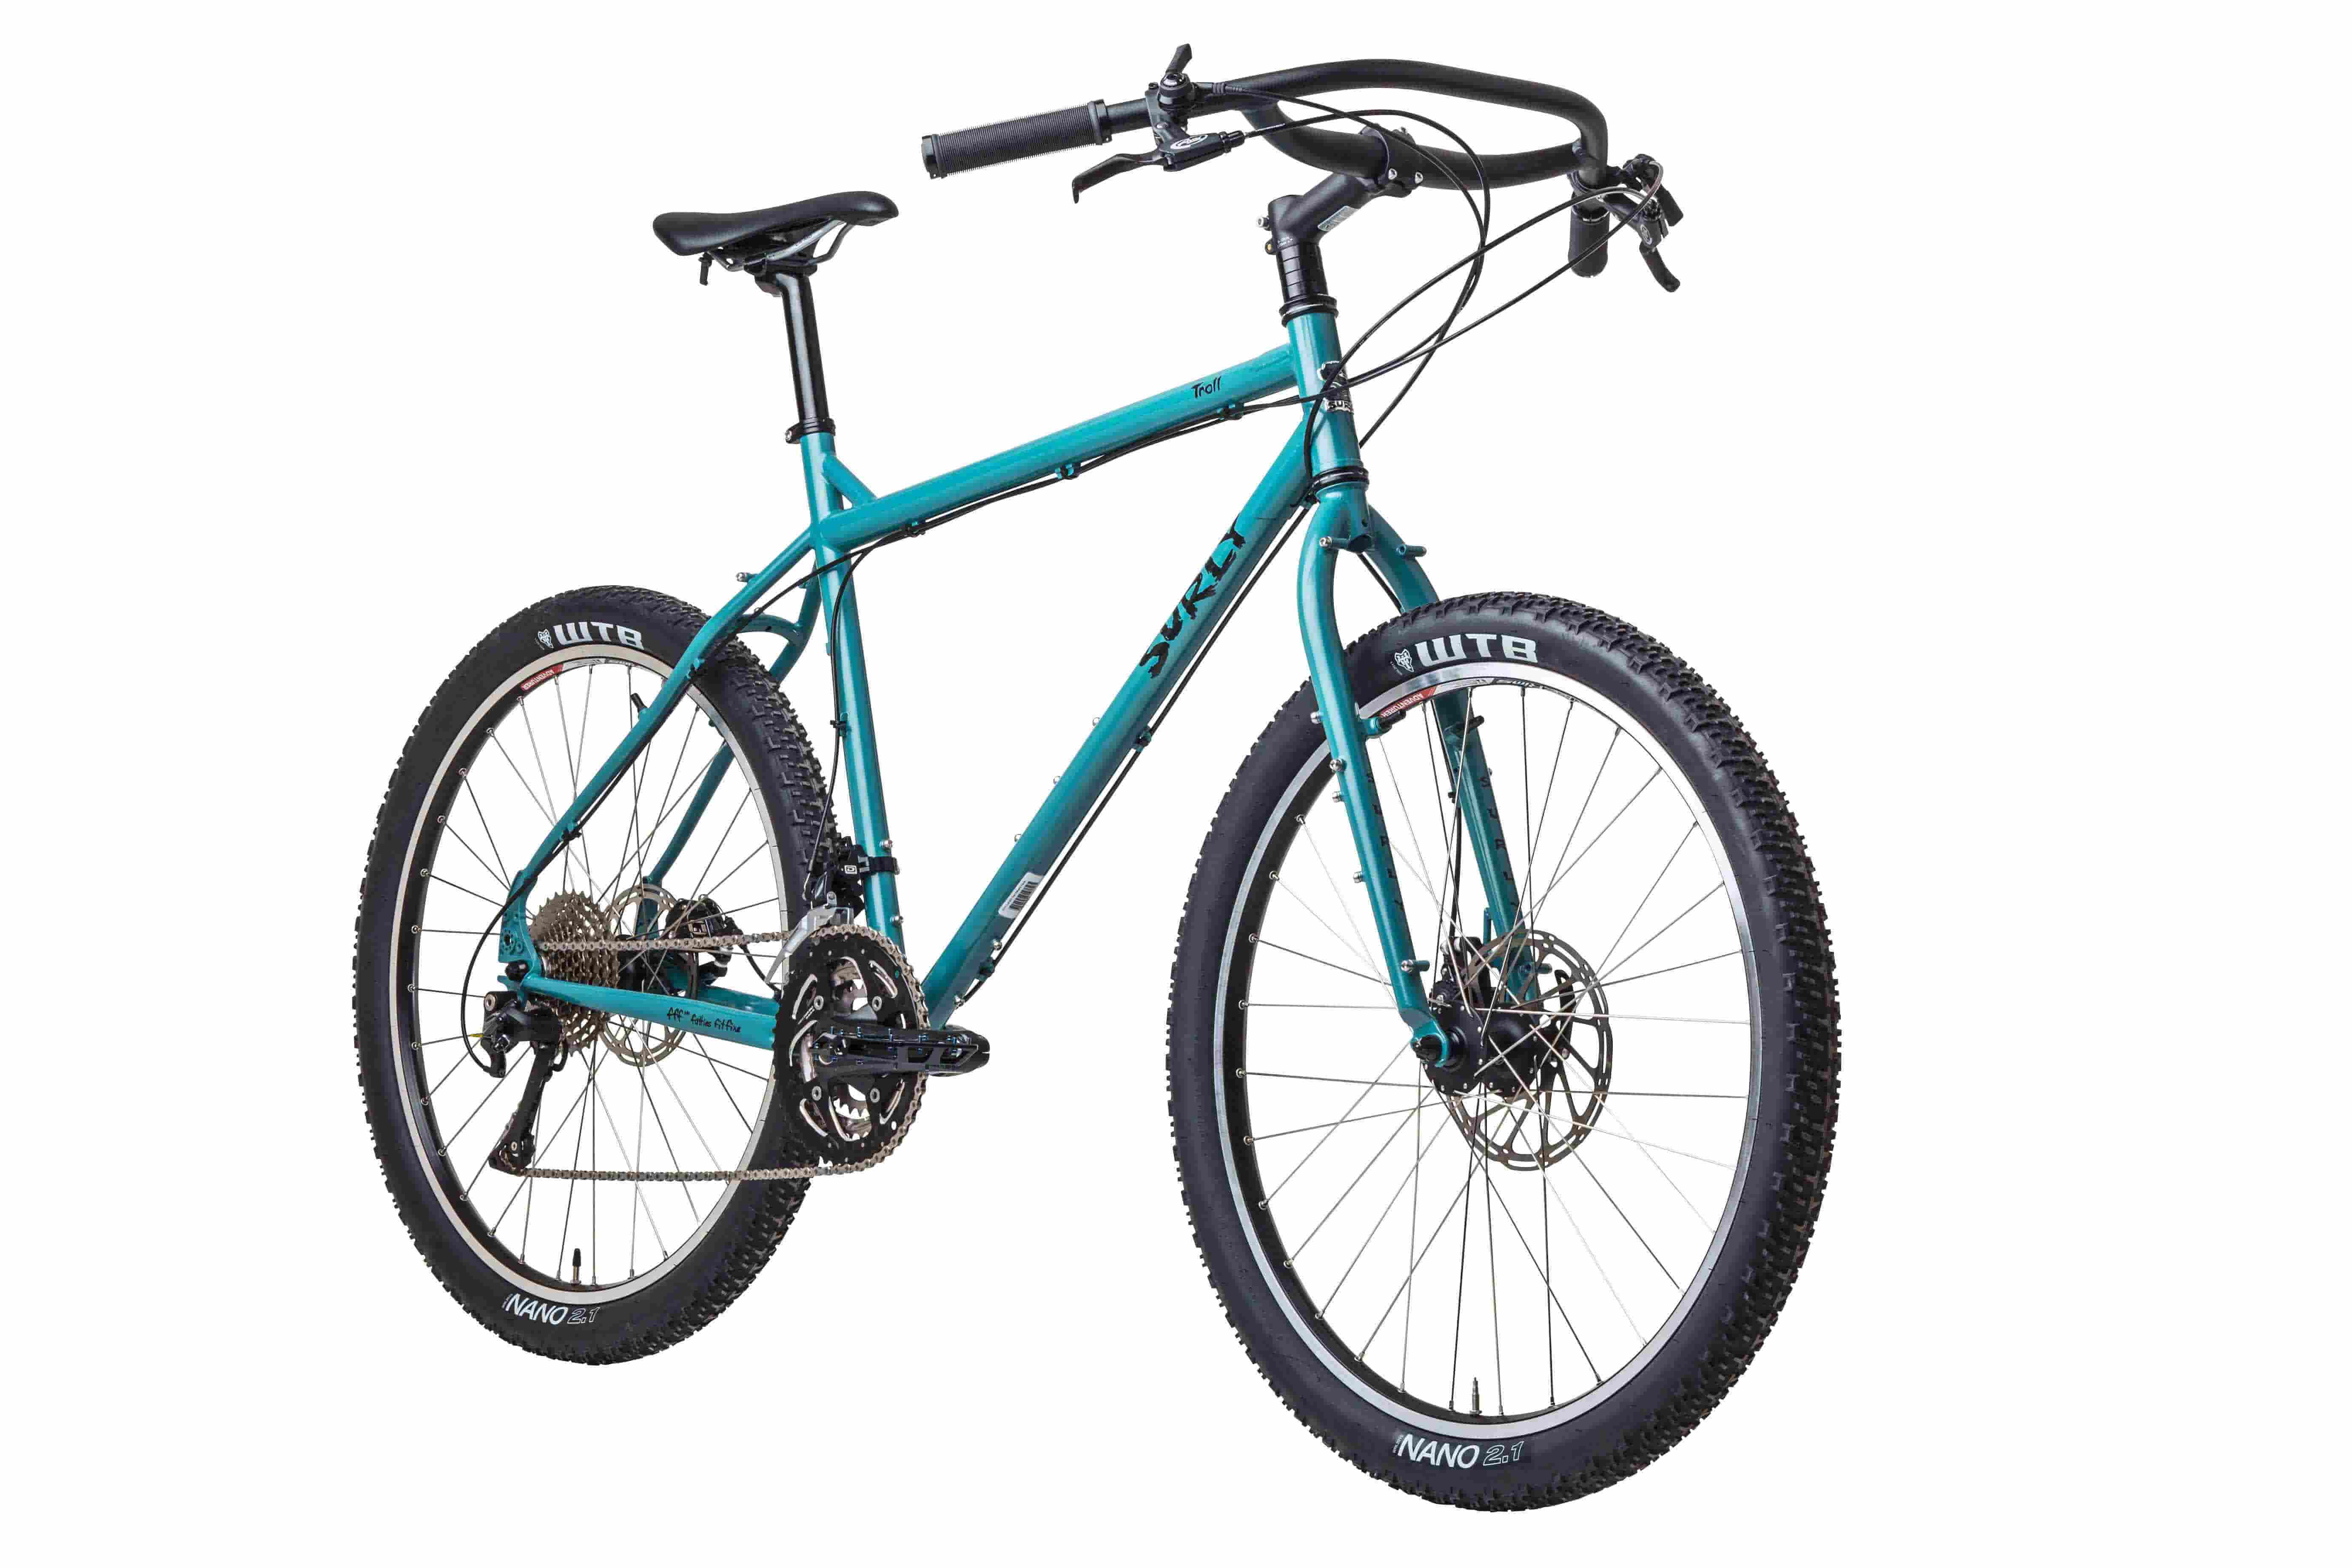 Surly Troll bike - Teal - right side angled view